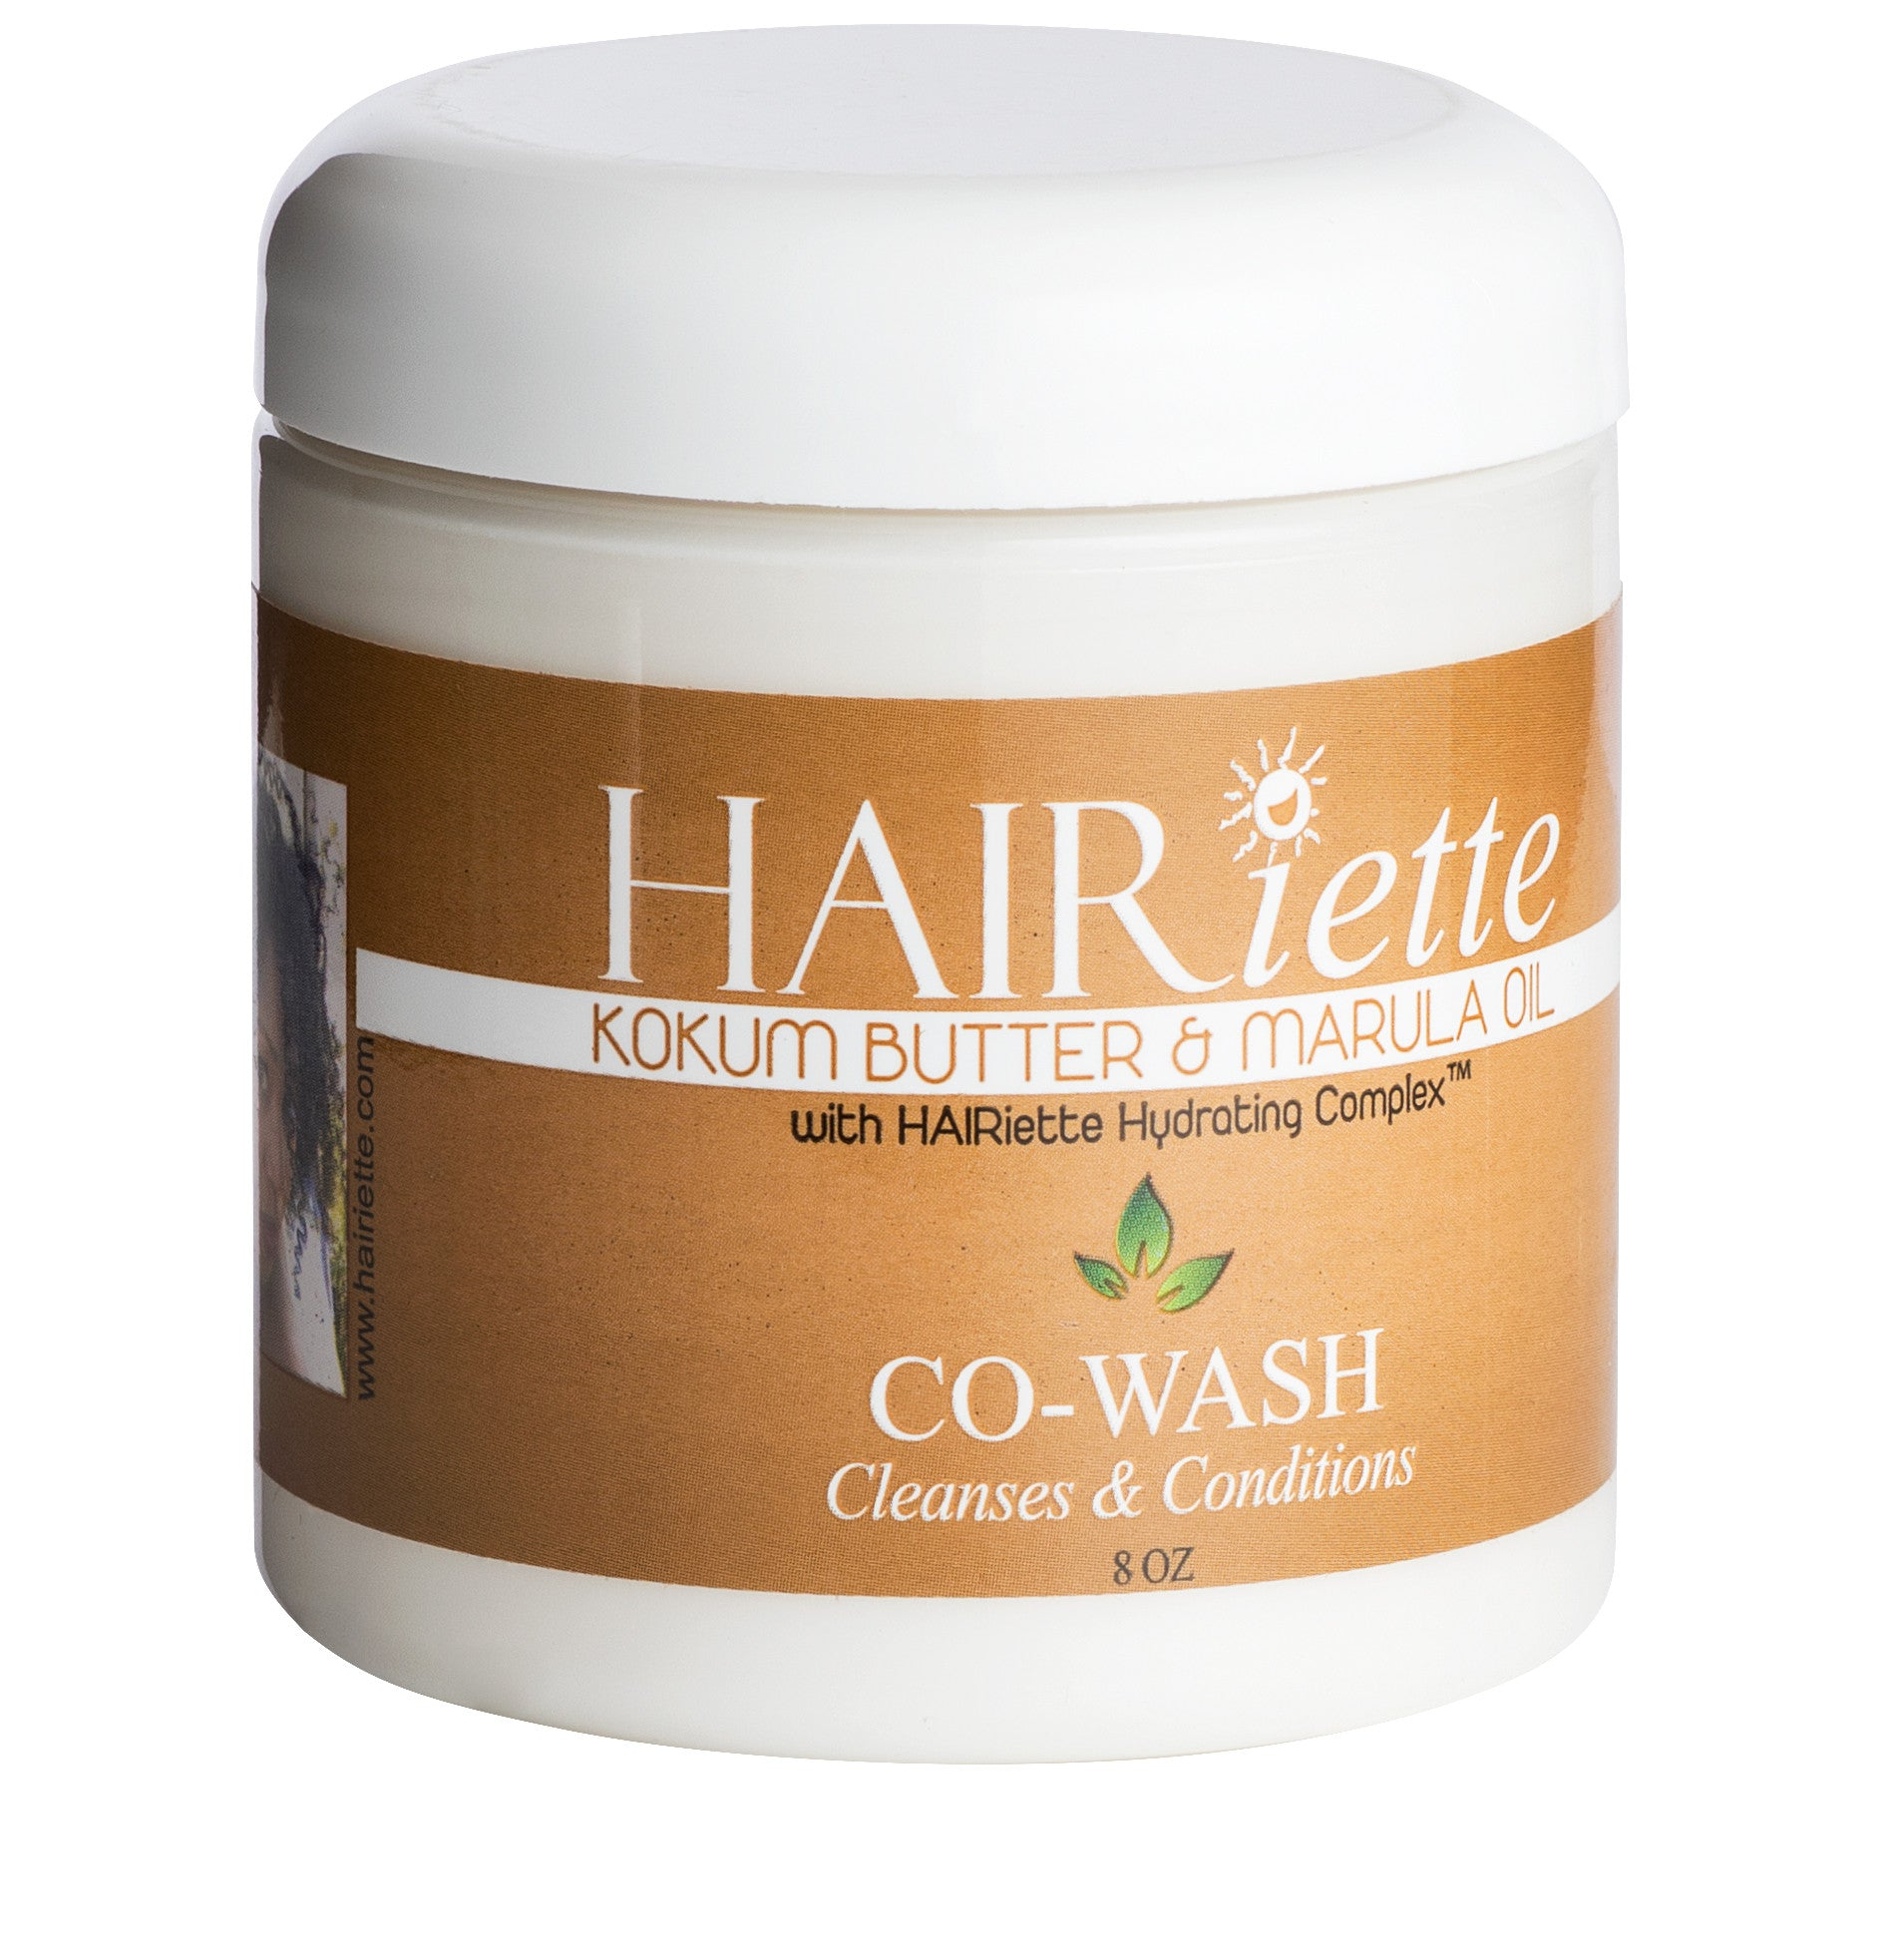 ACT I: Kokum Butter and Marula Oil Conditioner-Wash